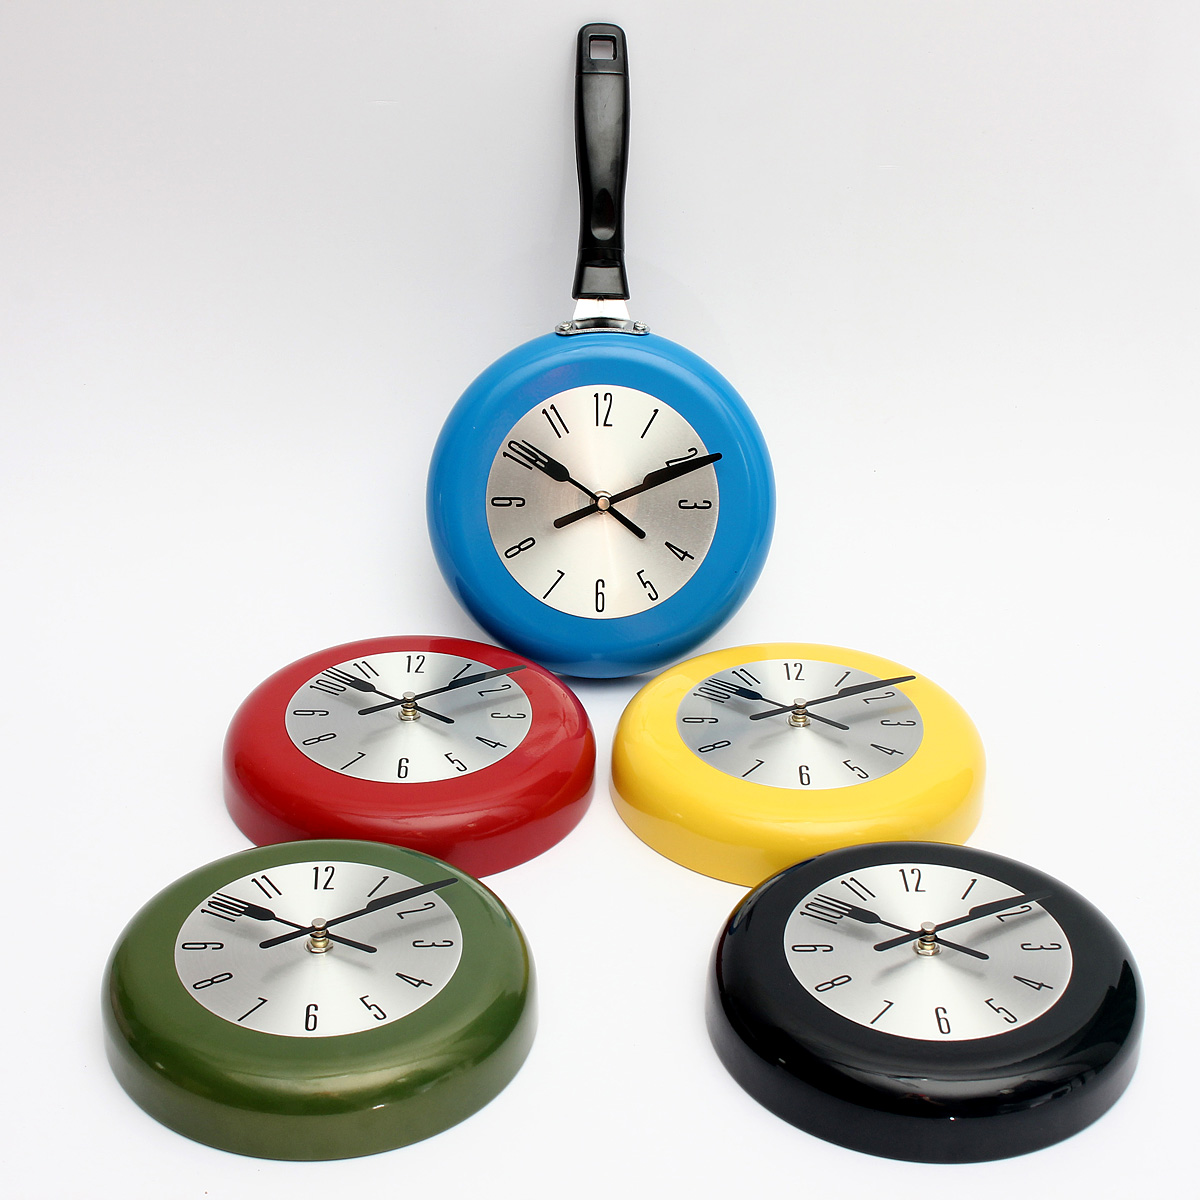 Decorative Wall Clocks For Home Office : Frying pan wall clock kitchen home office decor cooking